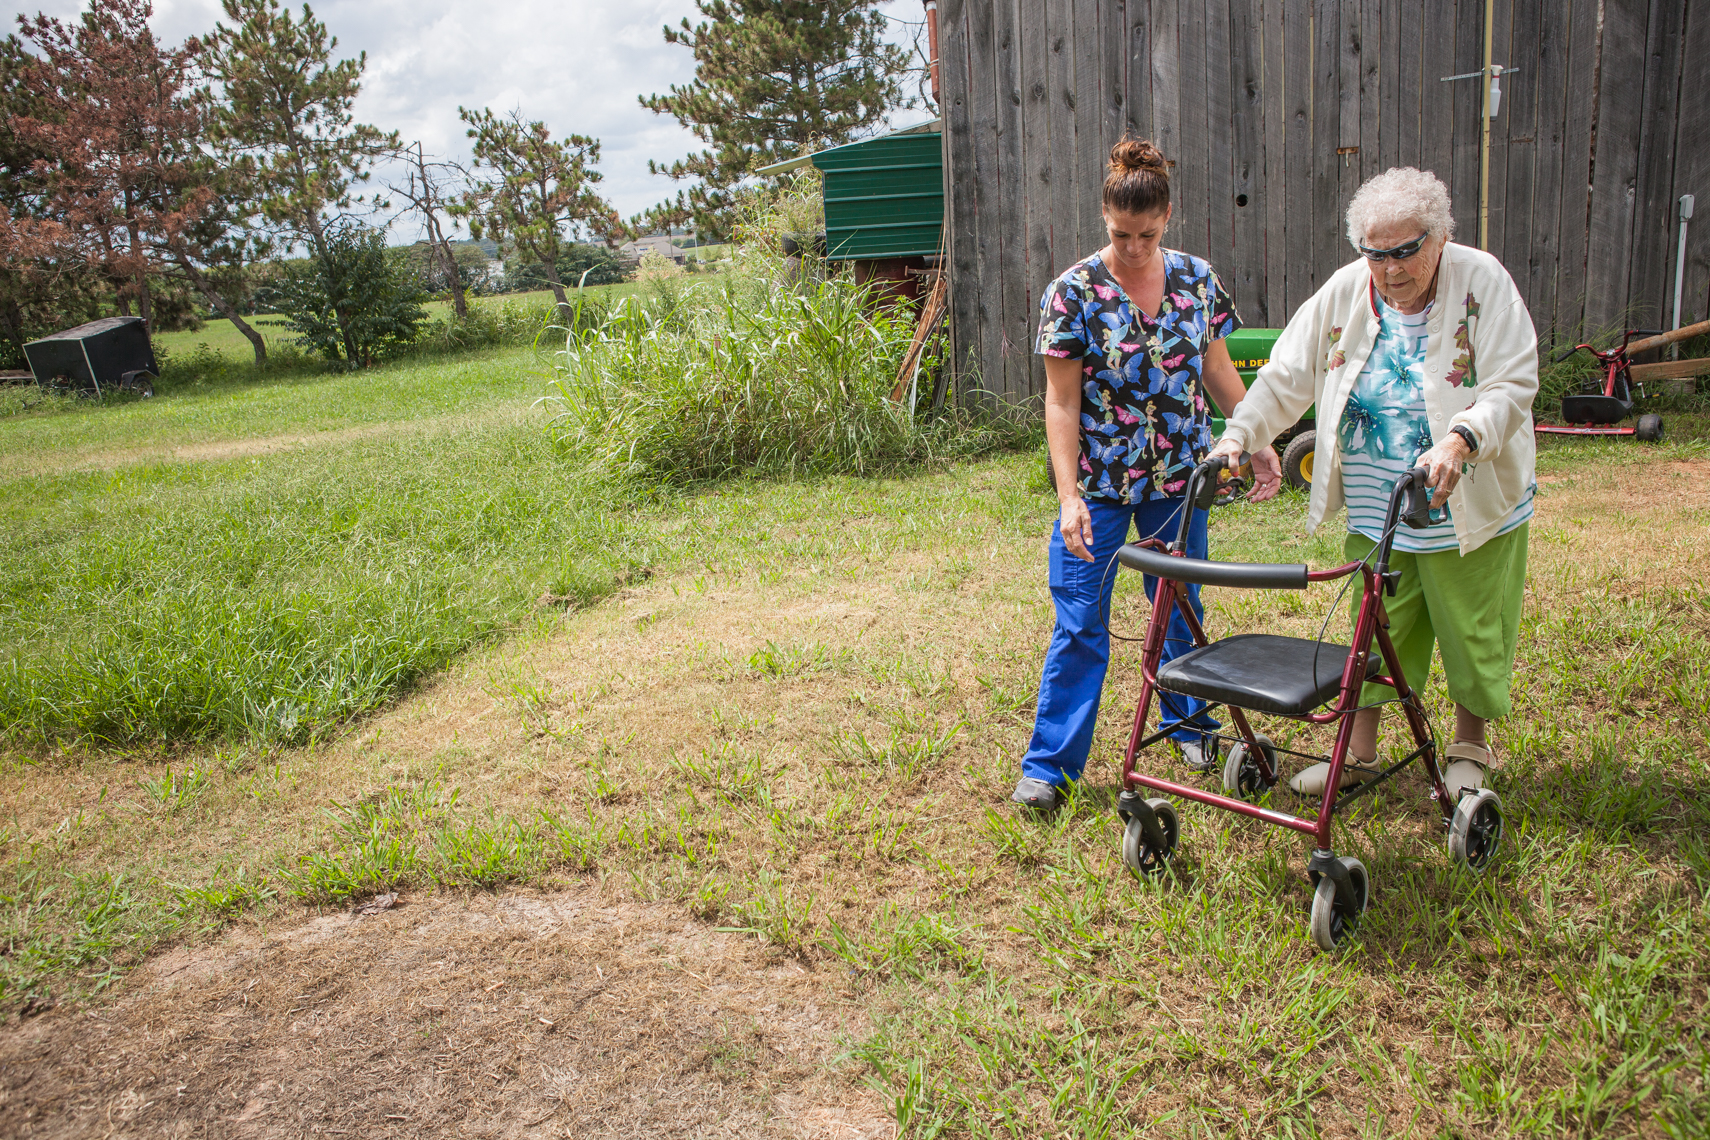 Elderly healthcare, health worker, senior lifestyle, golden, mature, portrait, women together, authentic, Tennessee, TN, medicare, documentary, Nashville editorial photographer photojournalist, Kristina Krug Photography